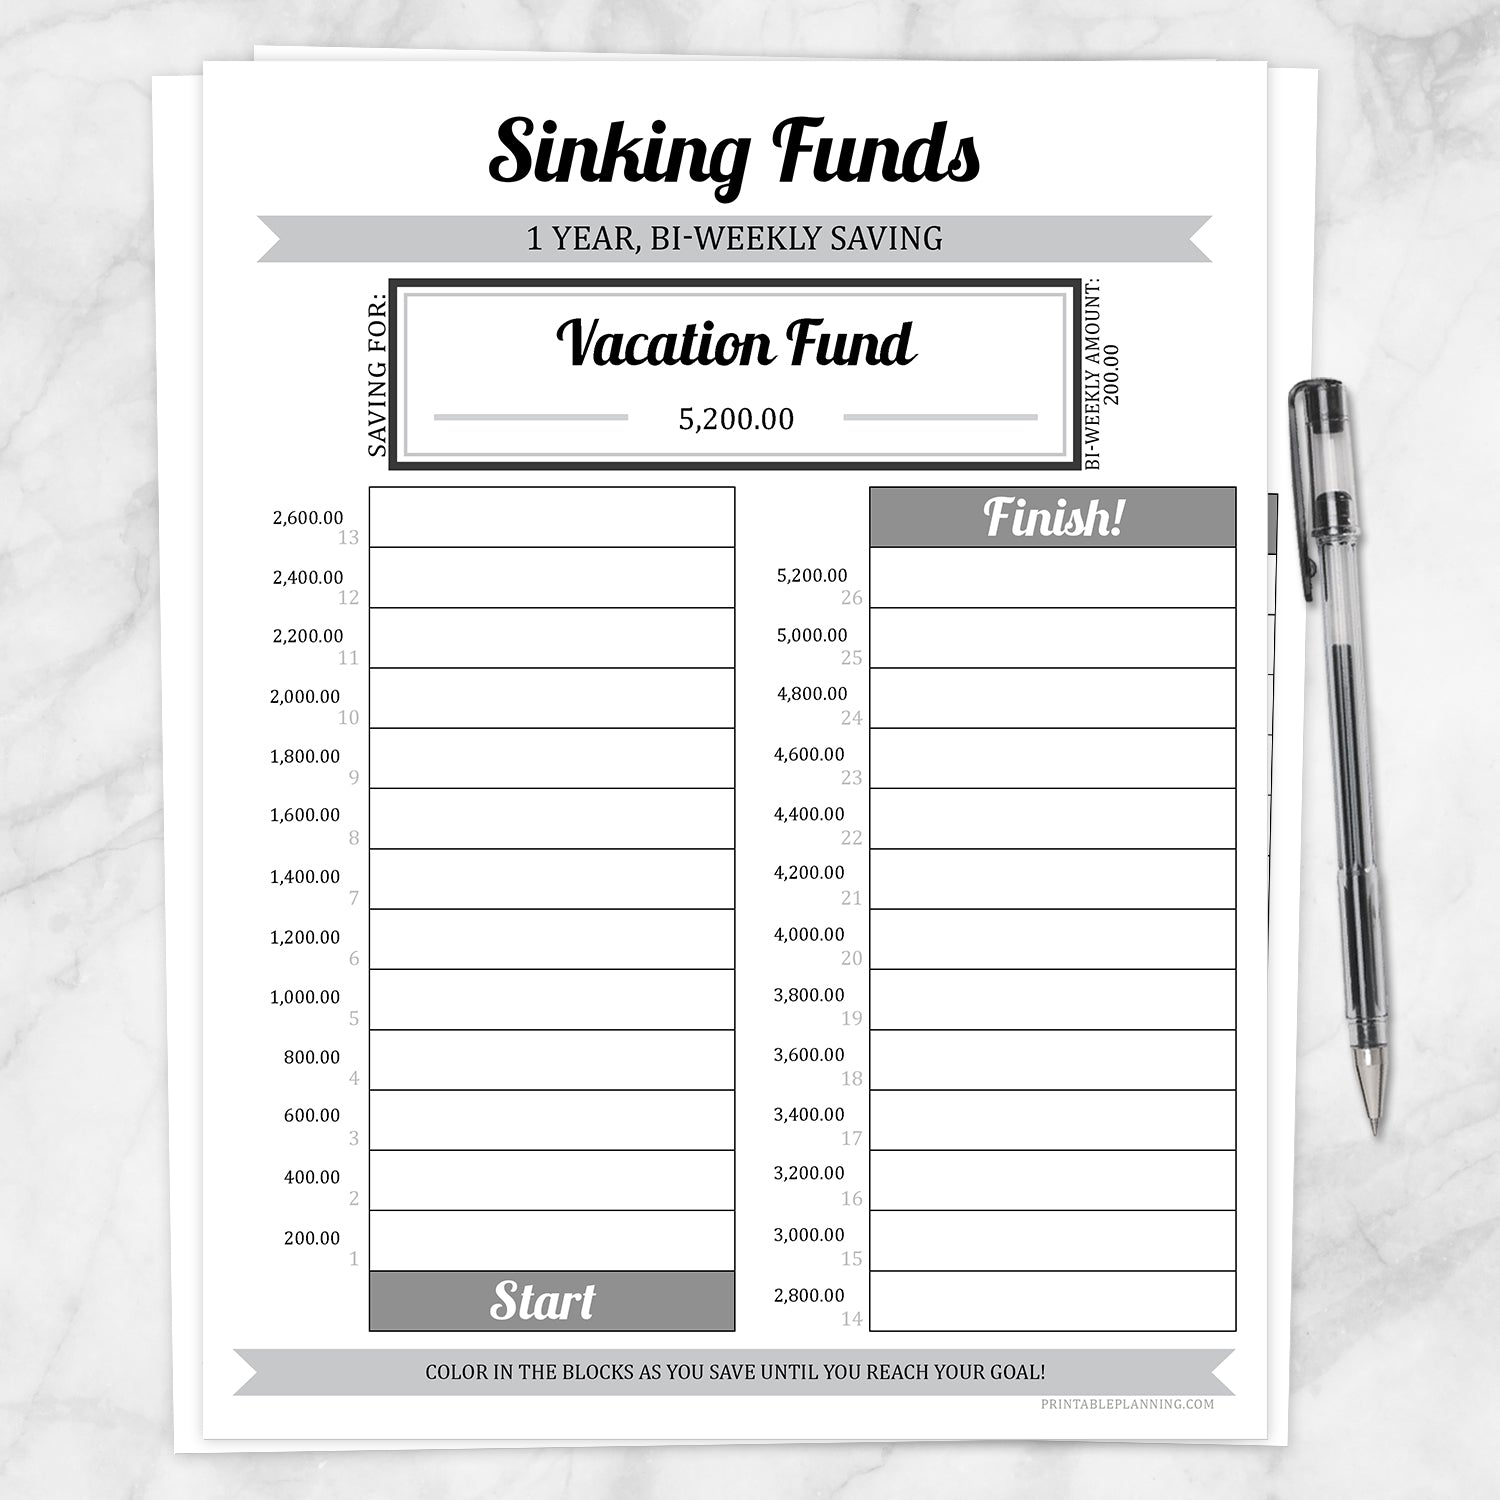 Printable Sinking Funds Savings Chart, 1 Year Bi-Weekly, at Printable Planning